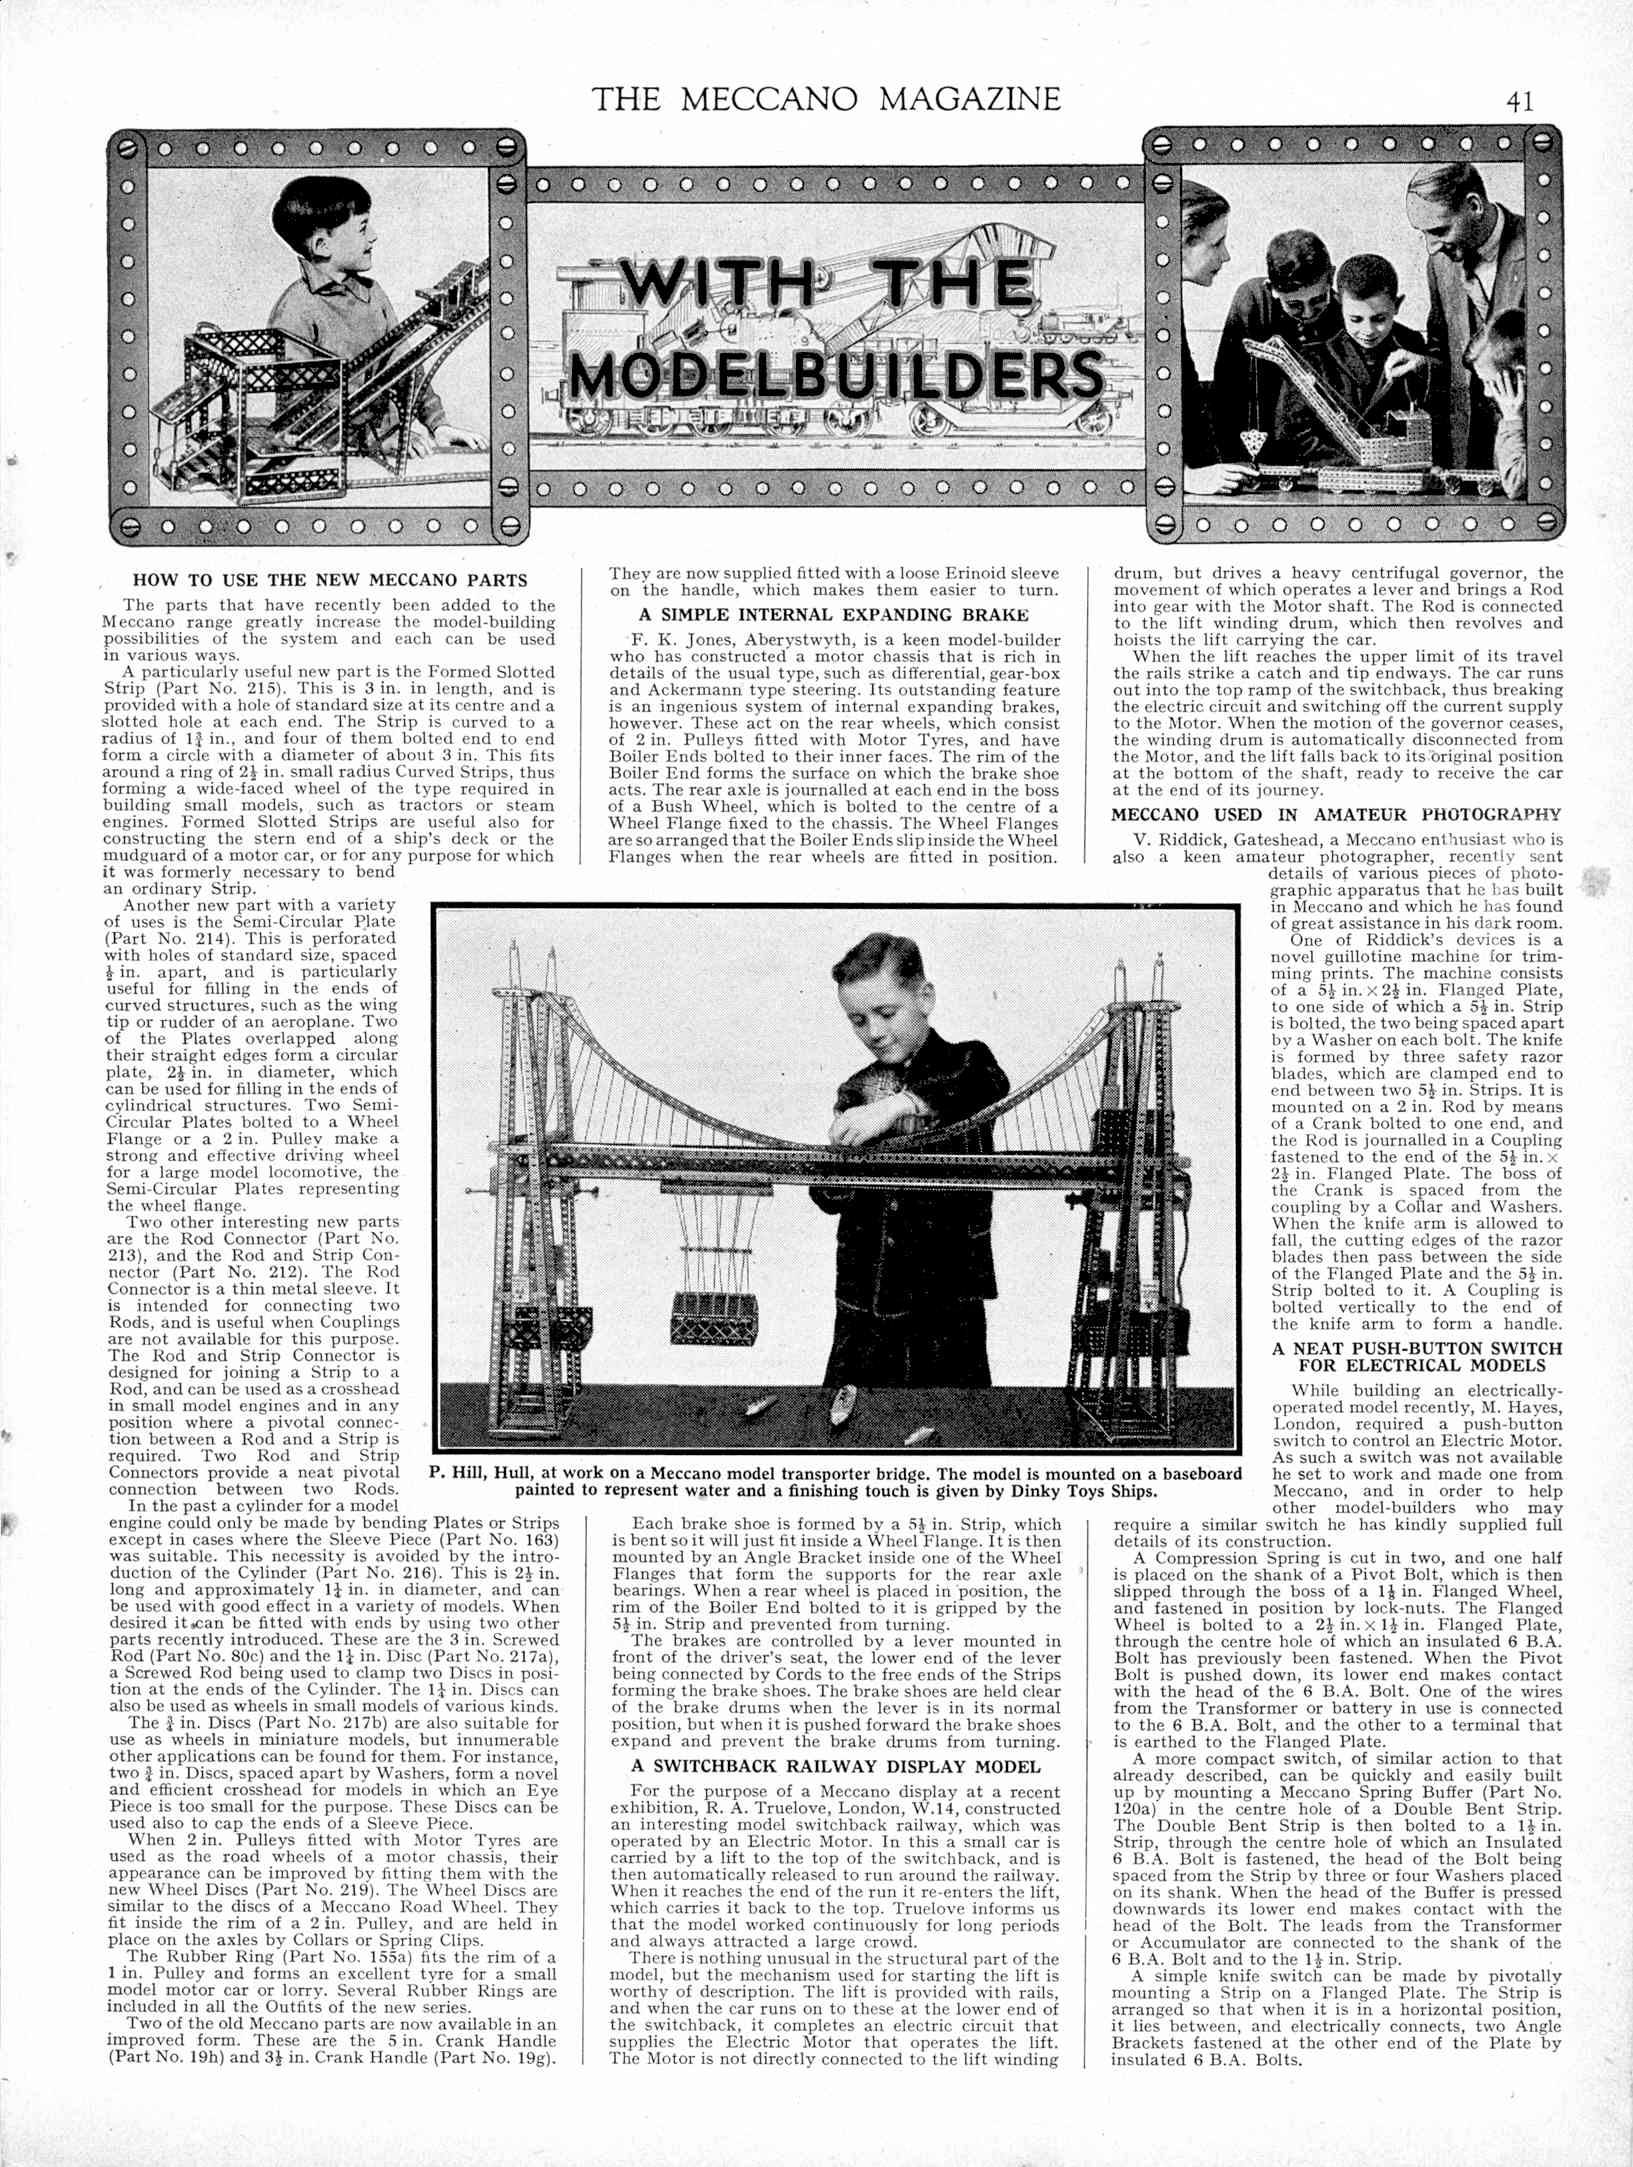 UK Meccano Magazine January 1938 Page 41